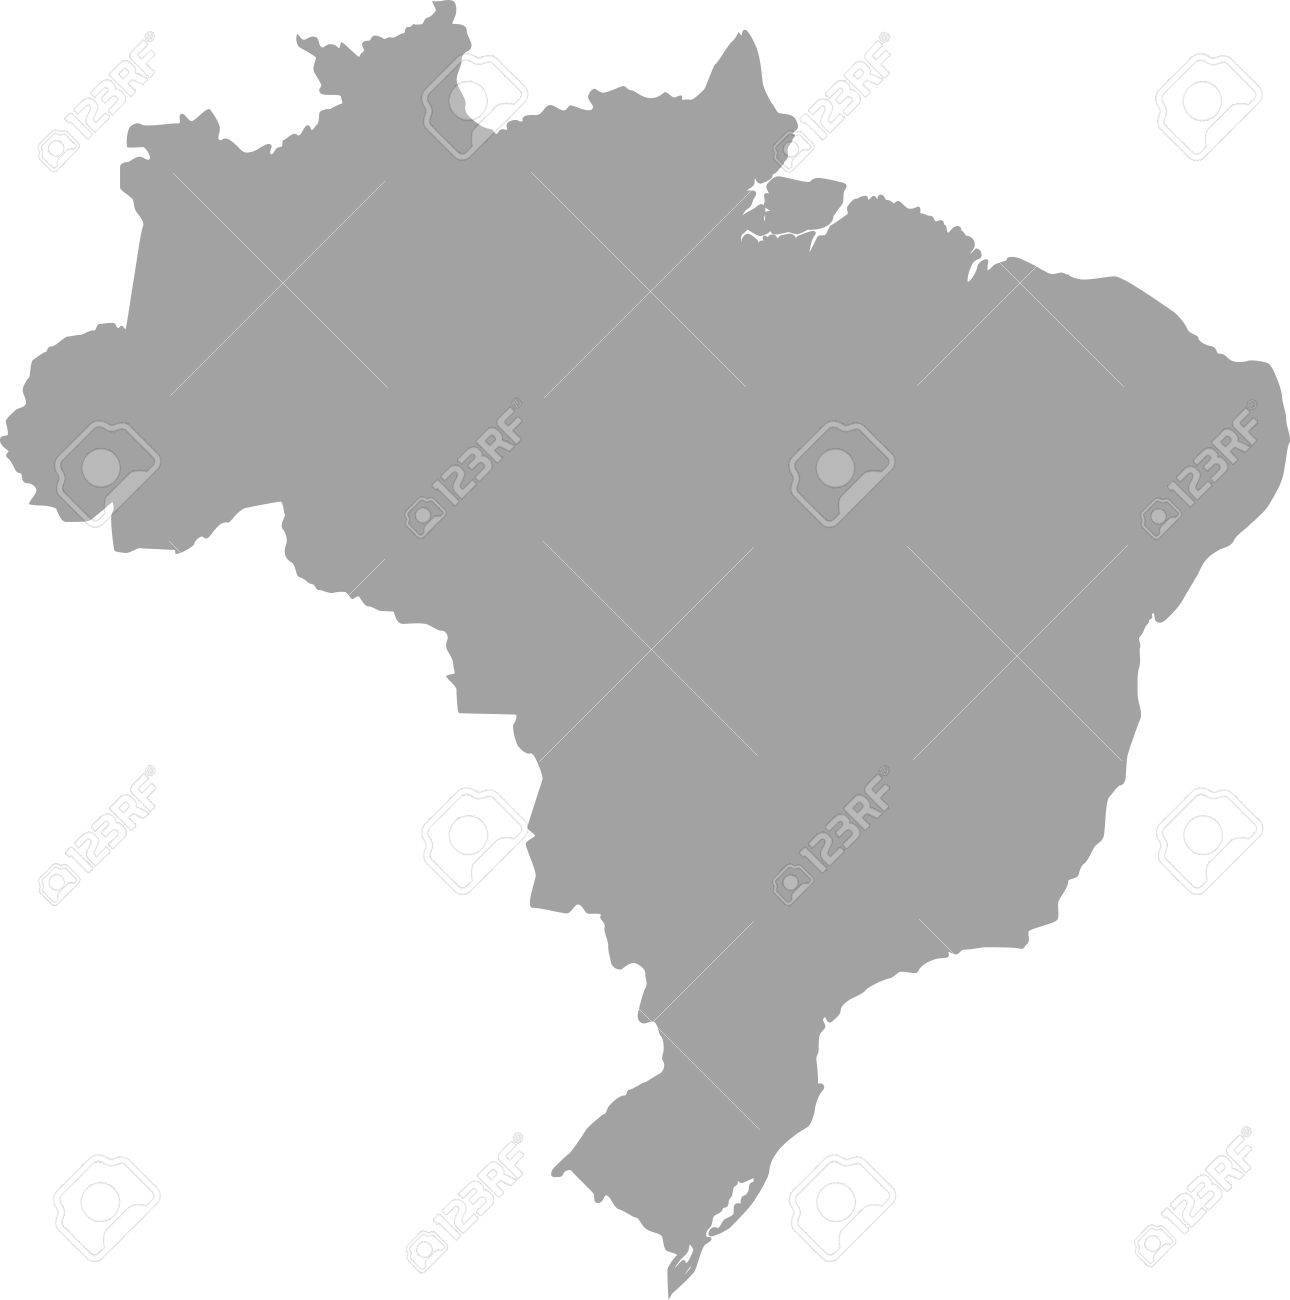 Brazil Map Outline Vector In Gray Color Royalty Free Cliparts